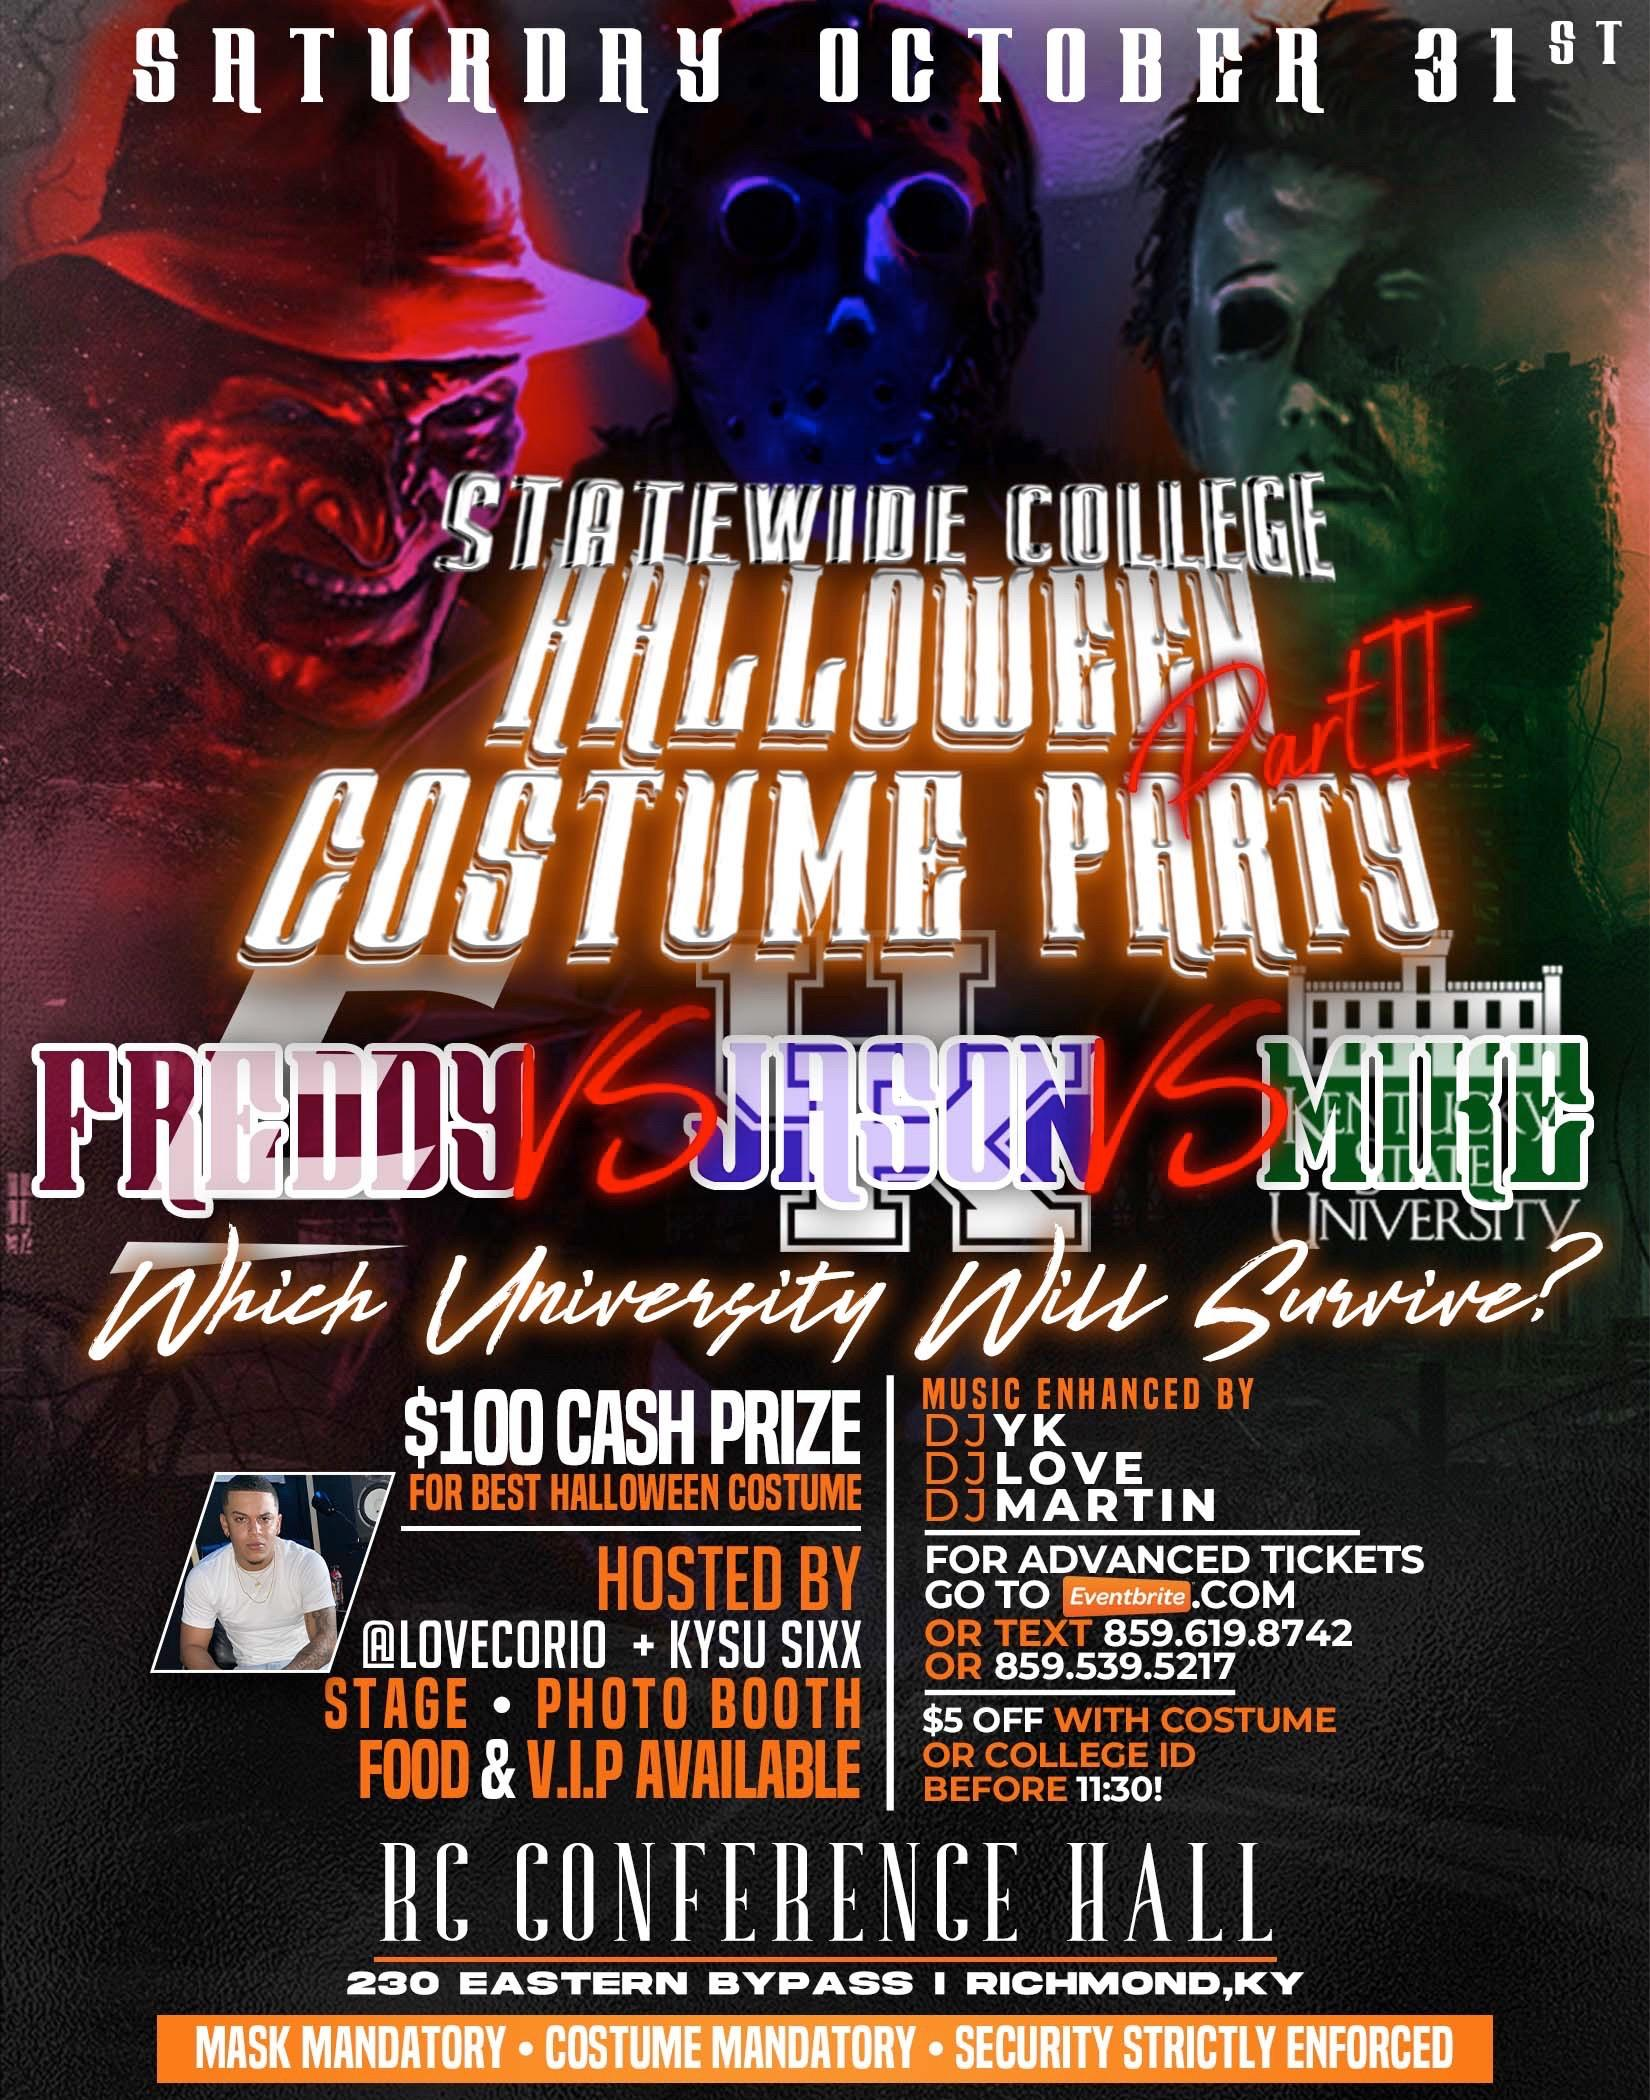 Richmond Ky Halloween 2020 STATEWIDE HALLOWEEN COLLEGE PARTY ! ! FREDDY vs JASON vs MICHAEL